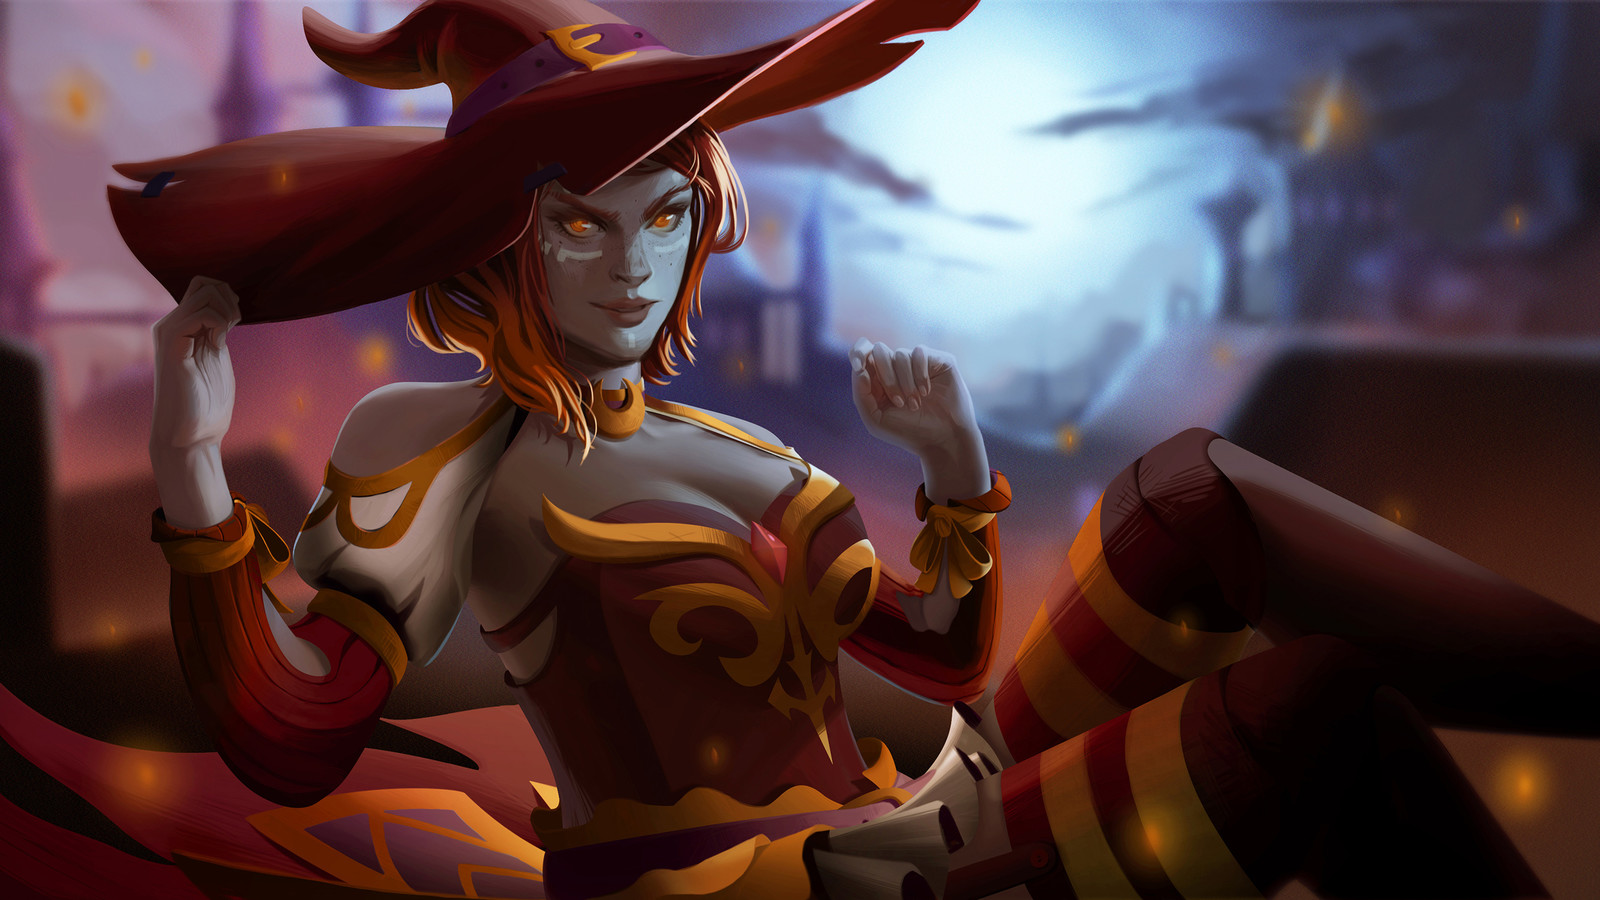 Twilight's Scarlet Slayer - DOTA 2 Lina's Set